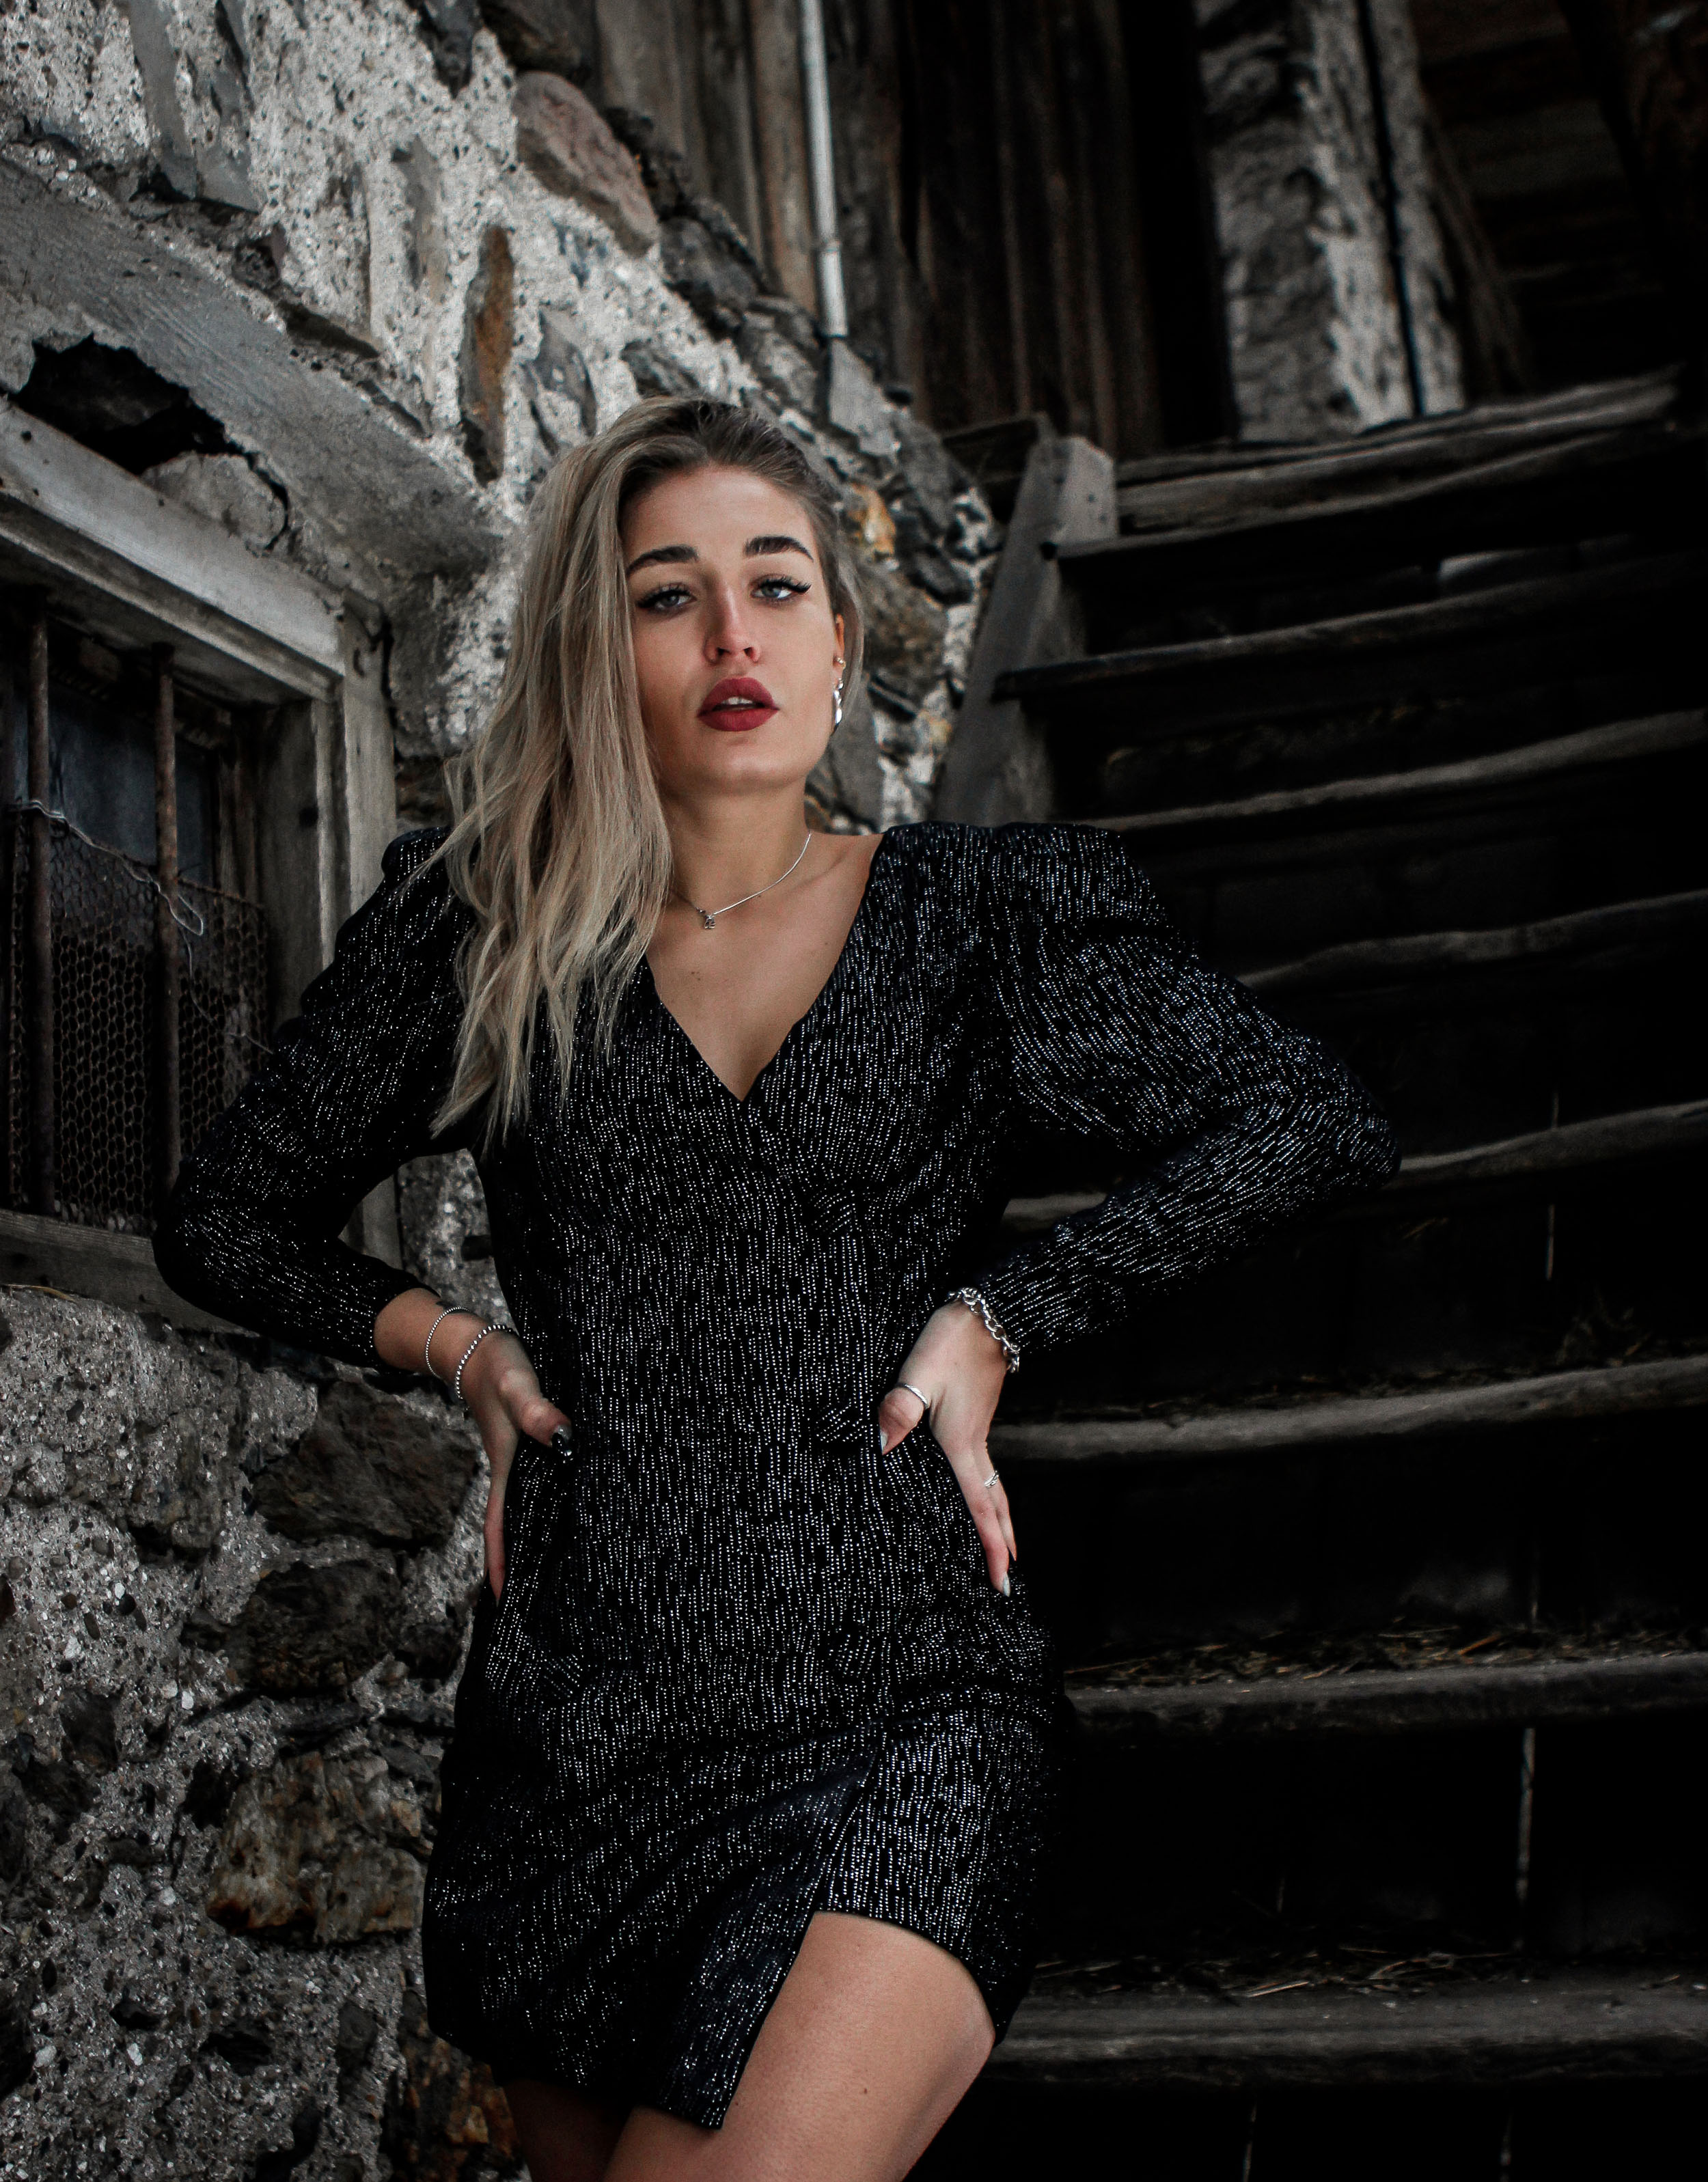 Lauralamode Silvester New Year 2019 2020 Happy New Year New Years Eve Outfit Silvester Outfit Fashion Outfit Look Berlin Munich Fashionblogger Modeblogger